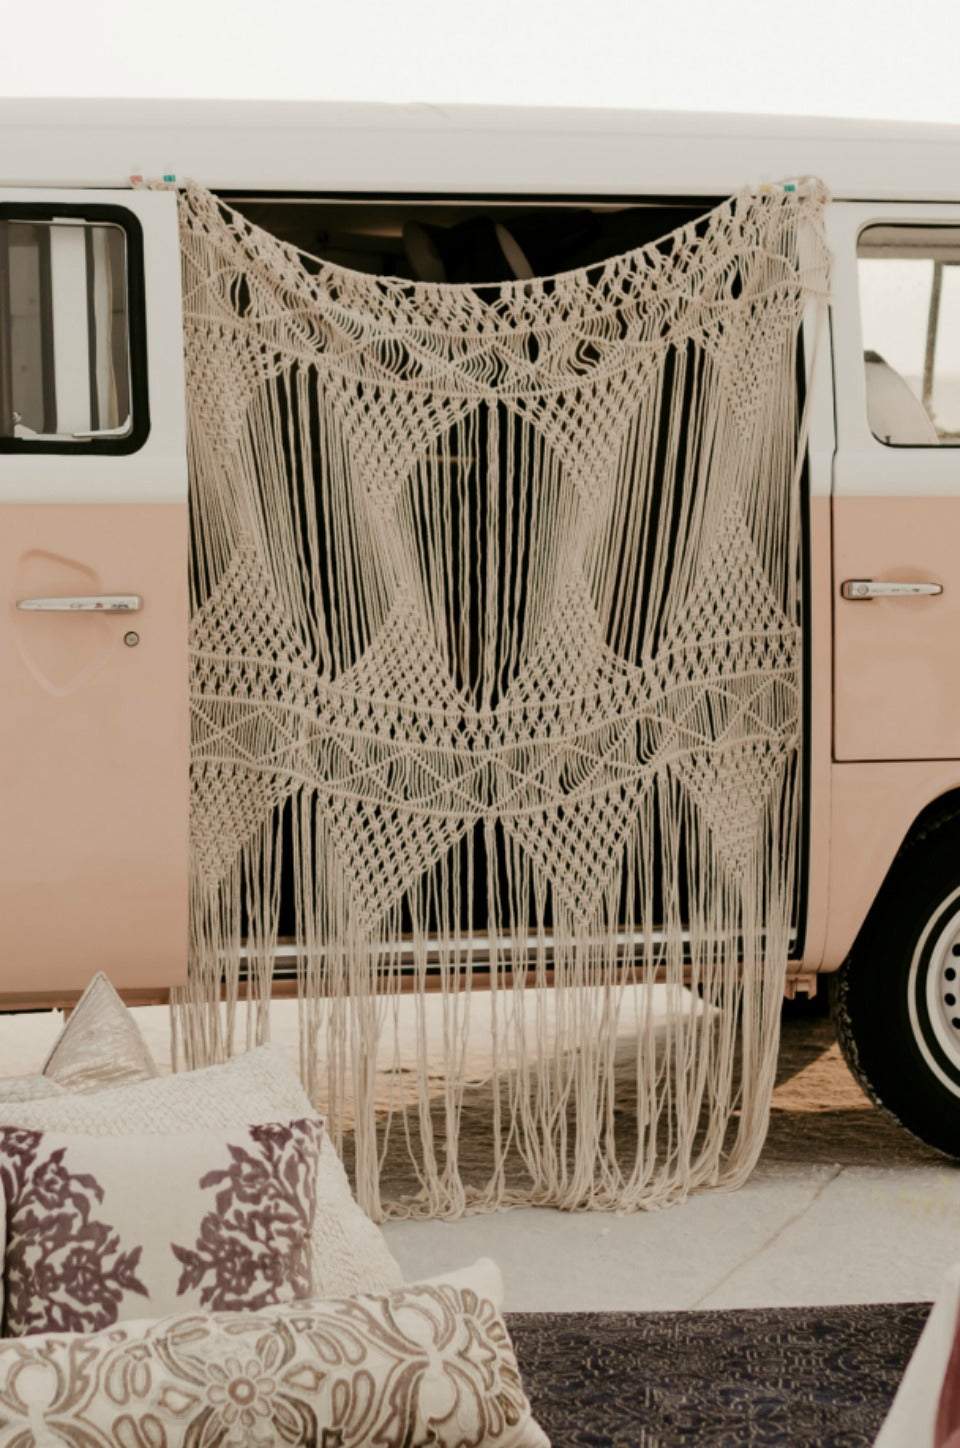 Bohemian macrame backdrop on VW bus